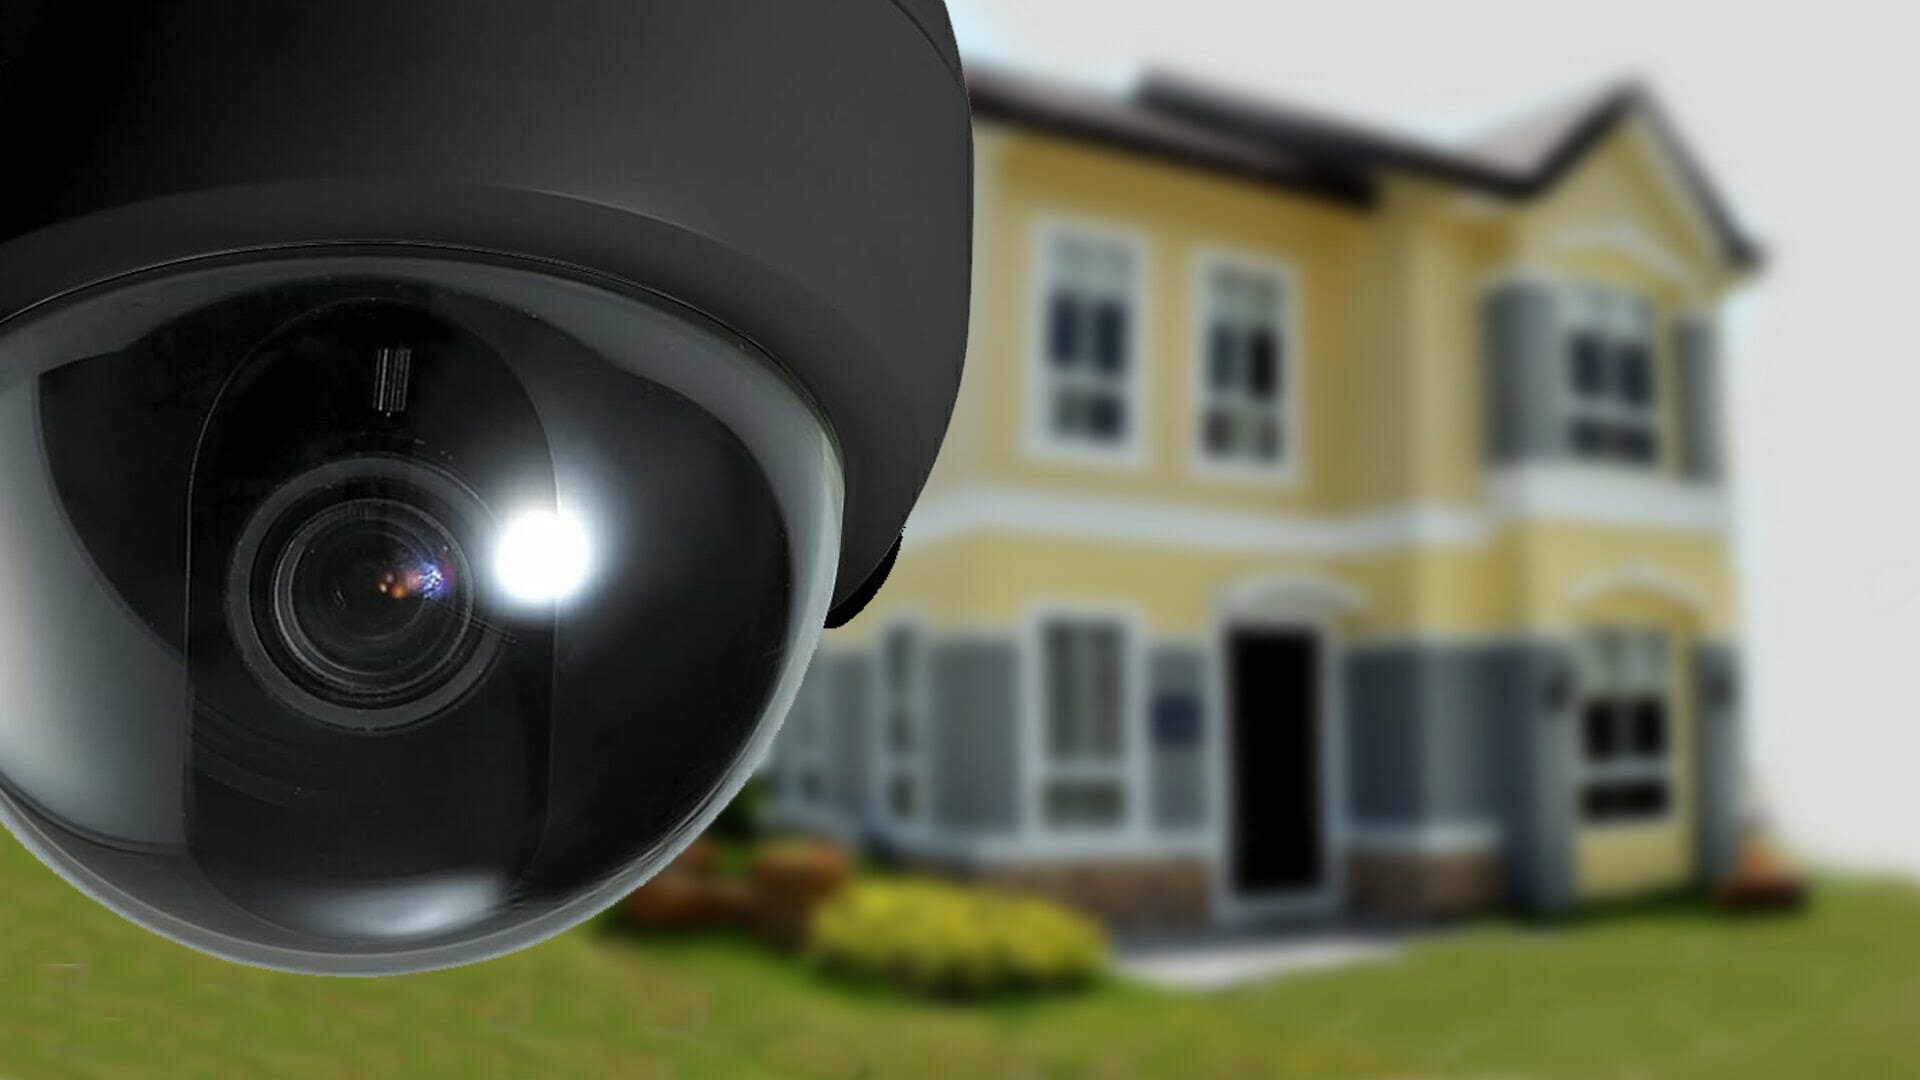 5 Important Benefits of Home Security Cameras